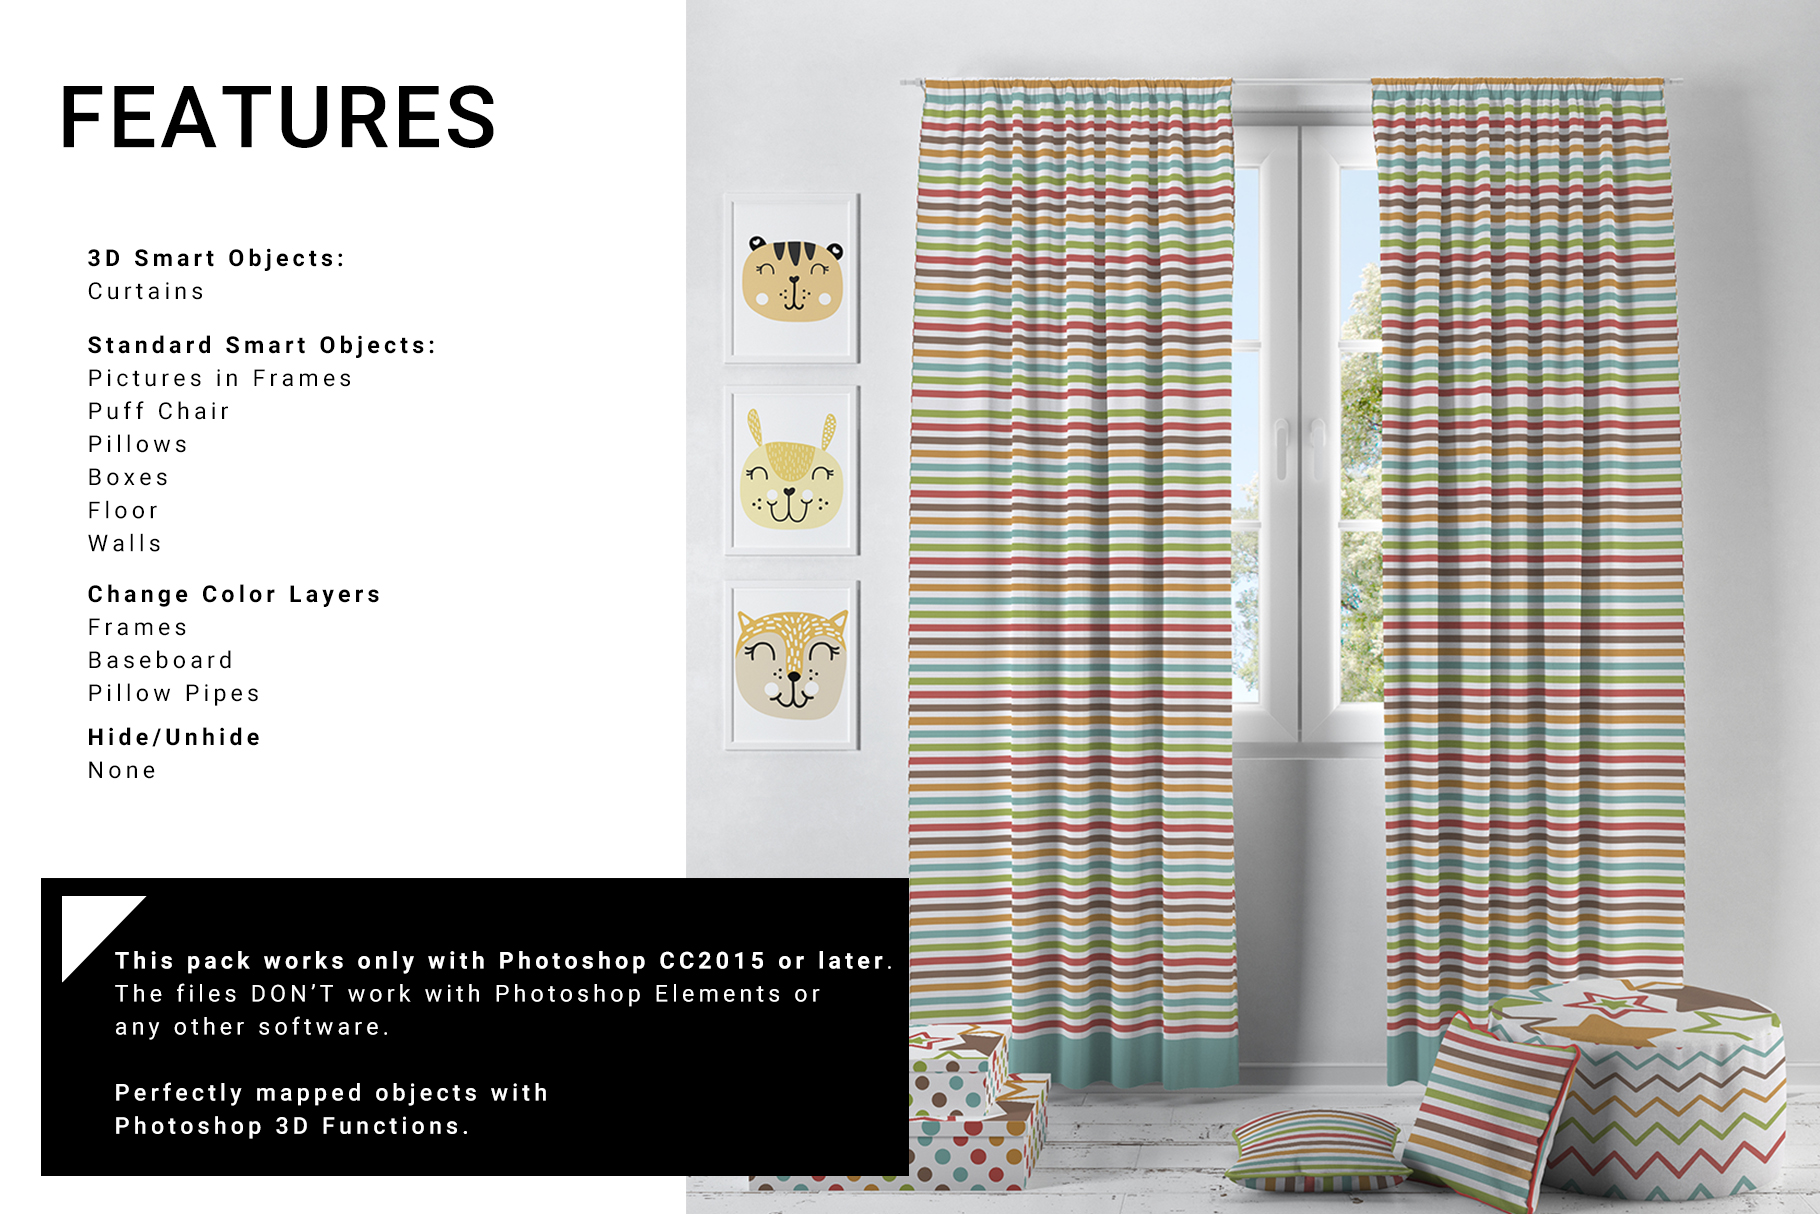 Nursery - Long and Short Curtains & Pipe Pillows